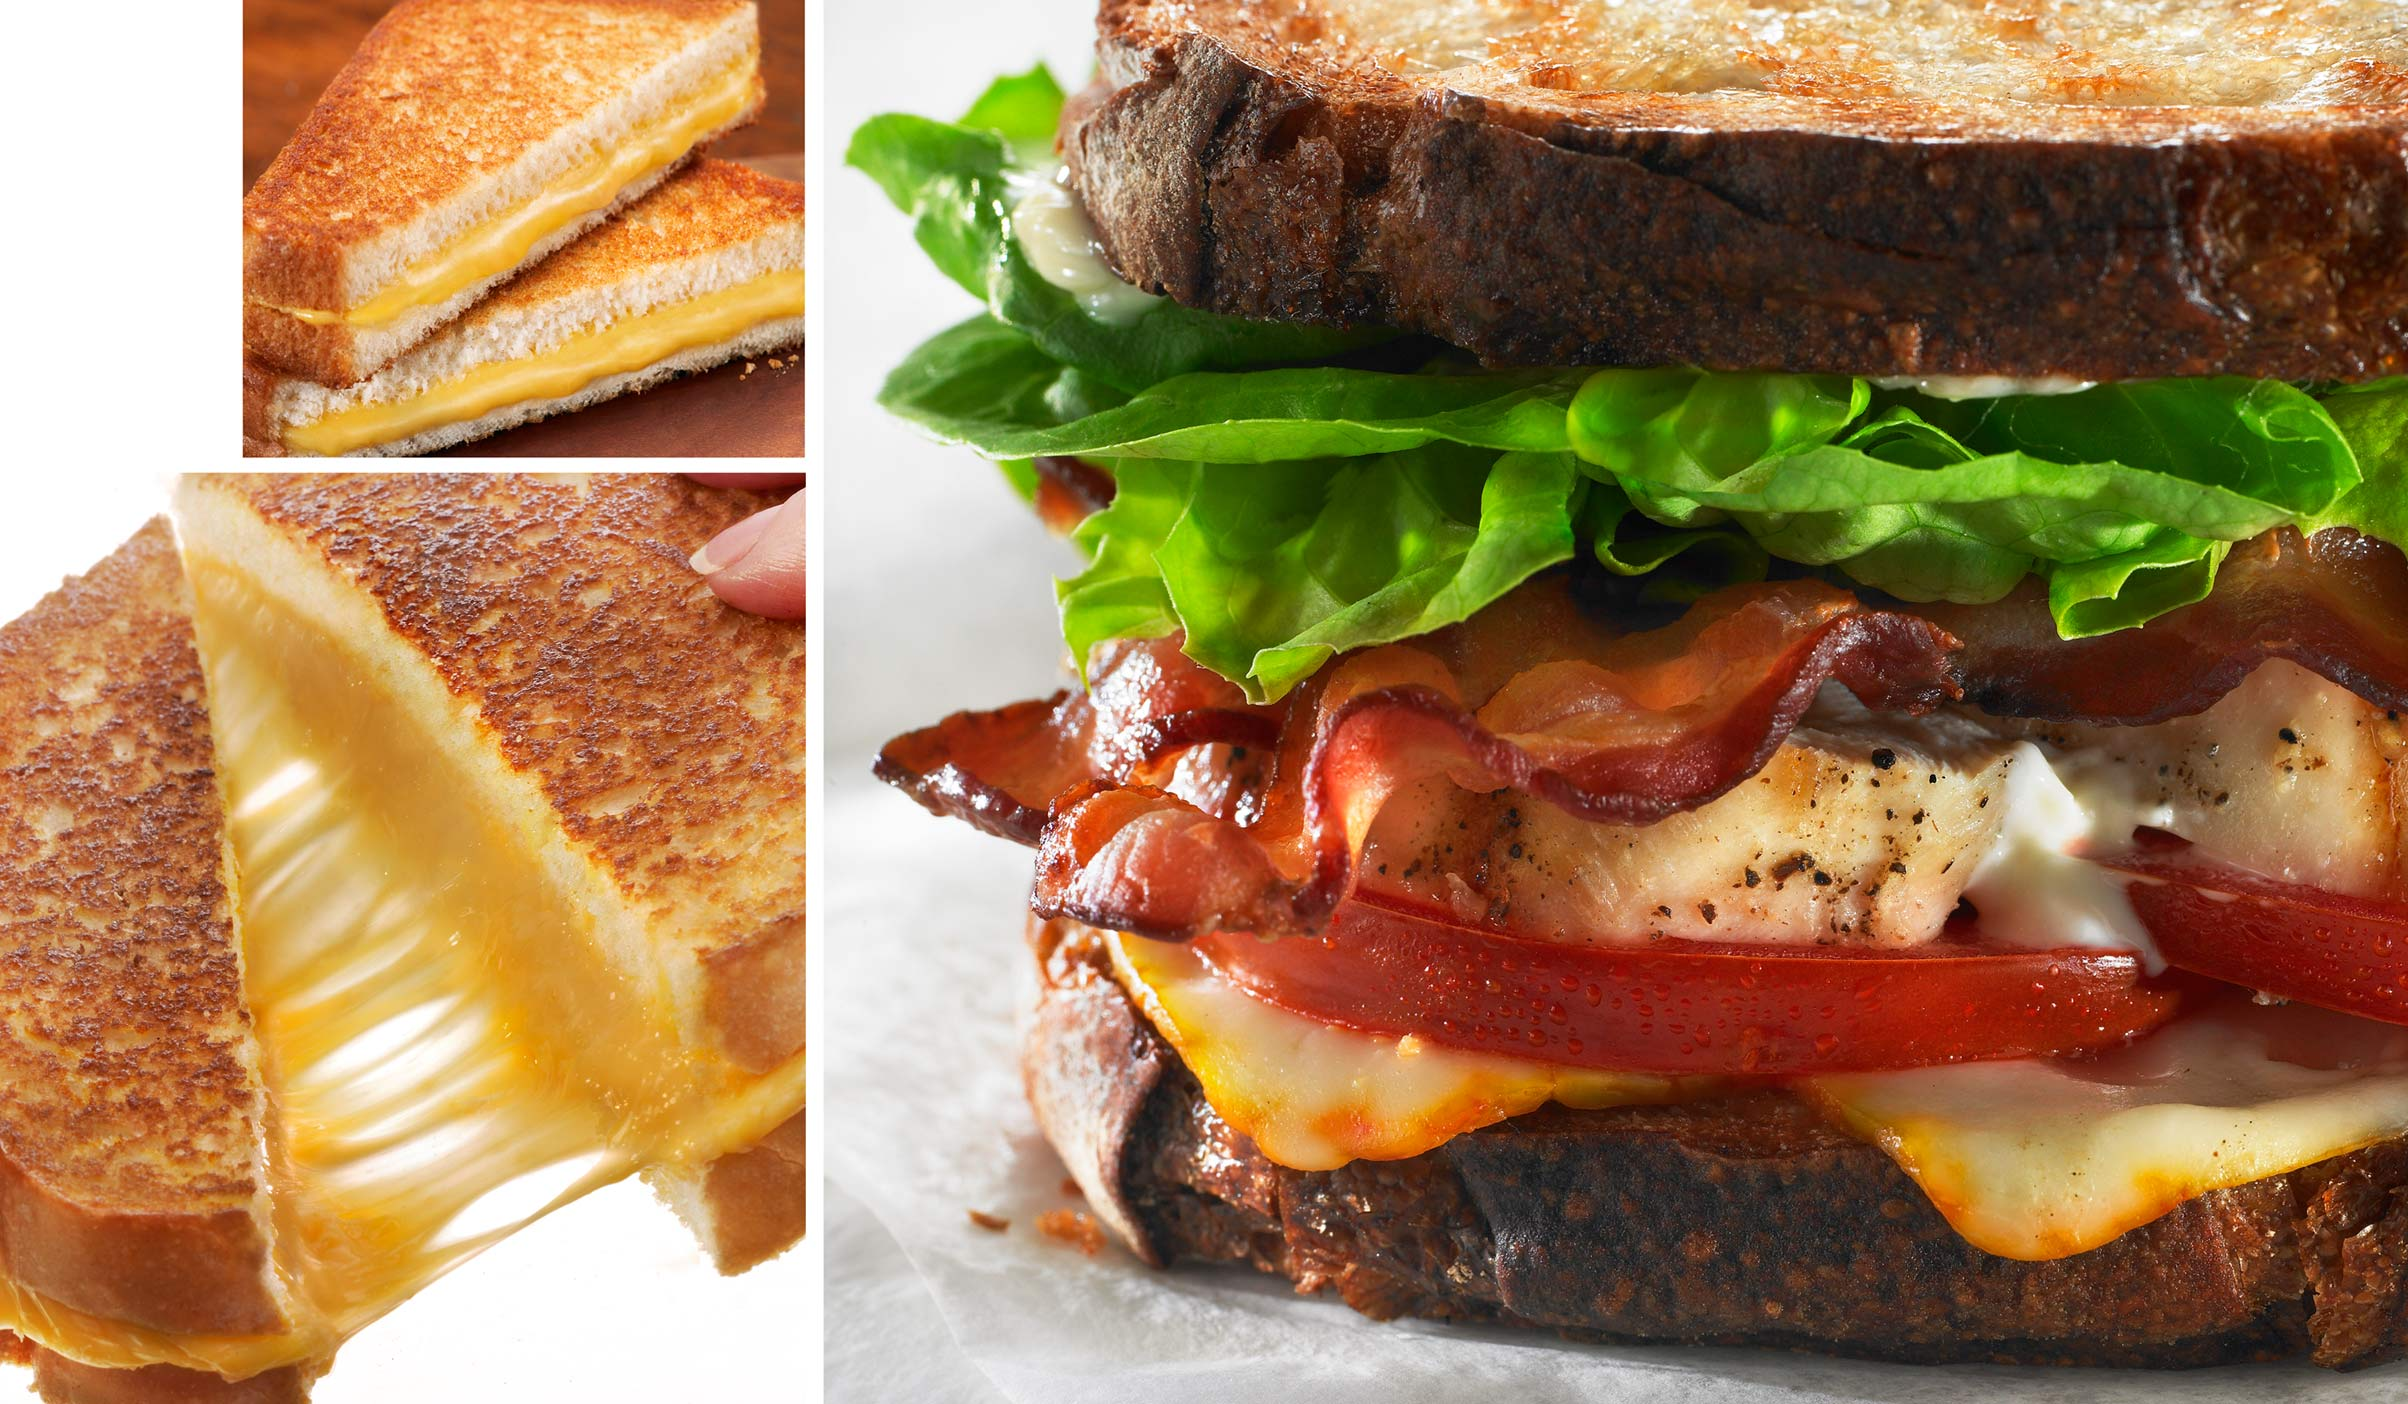 Grilled Cheese Sandwich, Cheese Pull, Turkey BLT